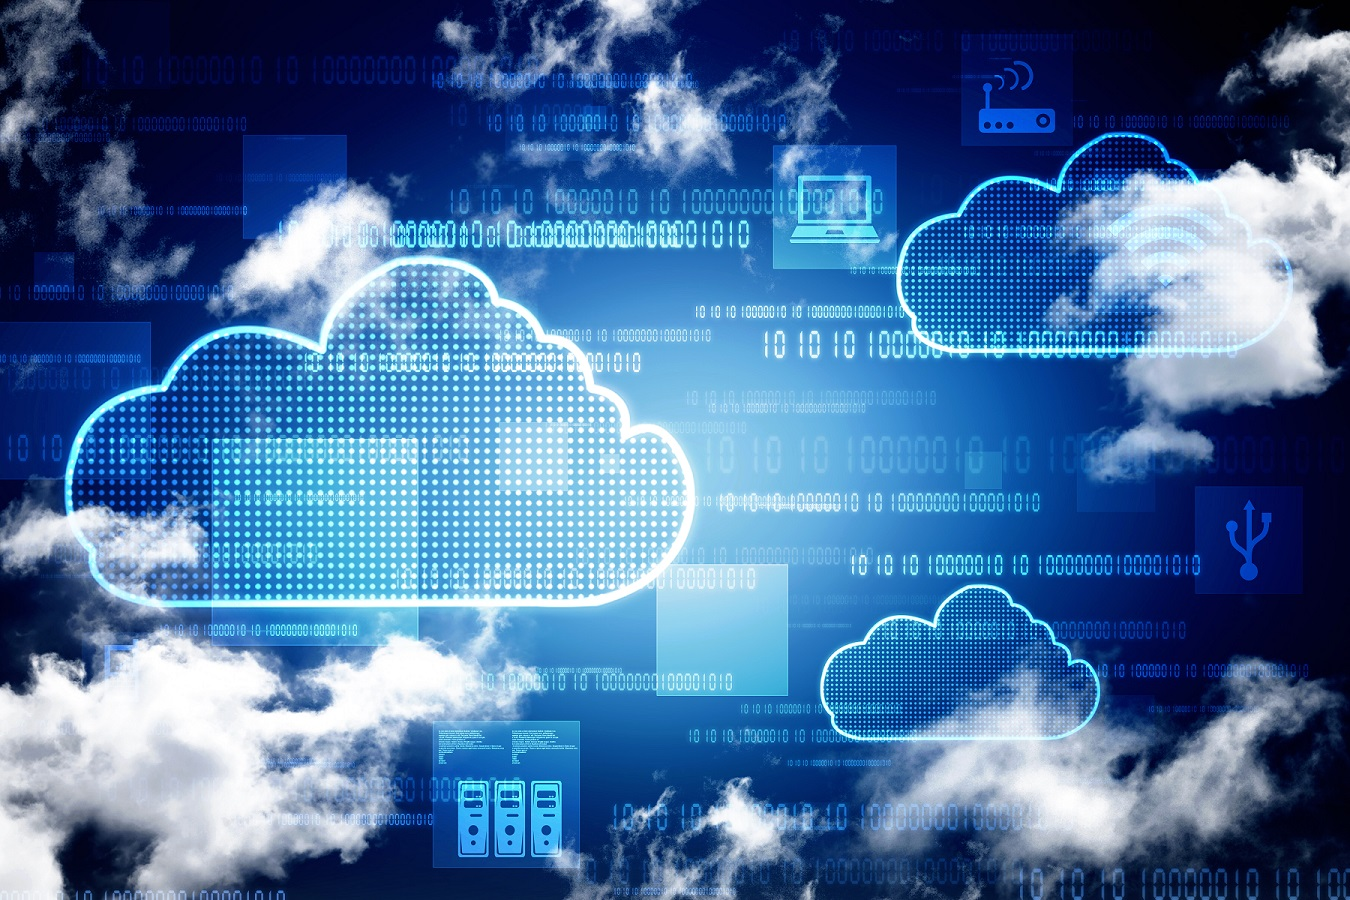 Revealed: 50 Percent of Today's Platform as a Service (PaaS) Offerings Are Now Cloud-Only